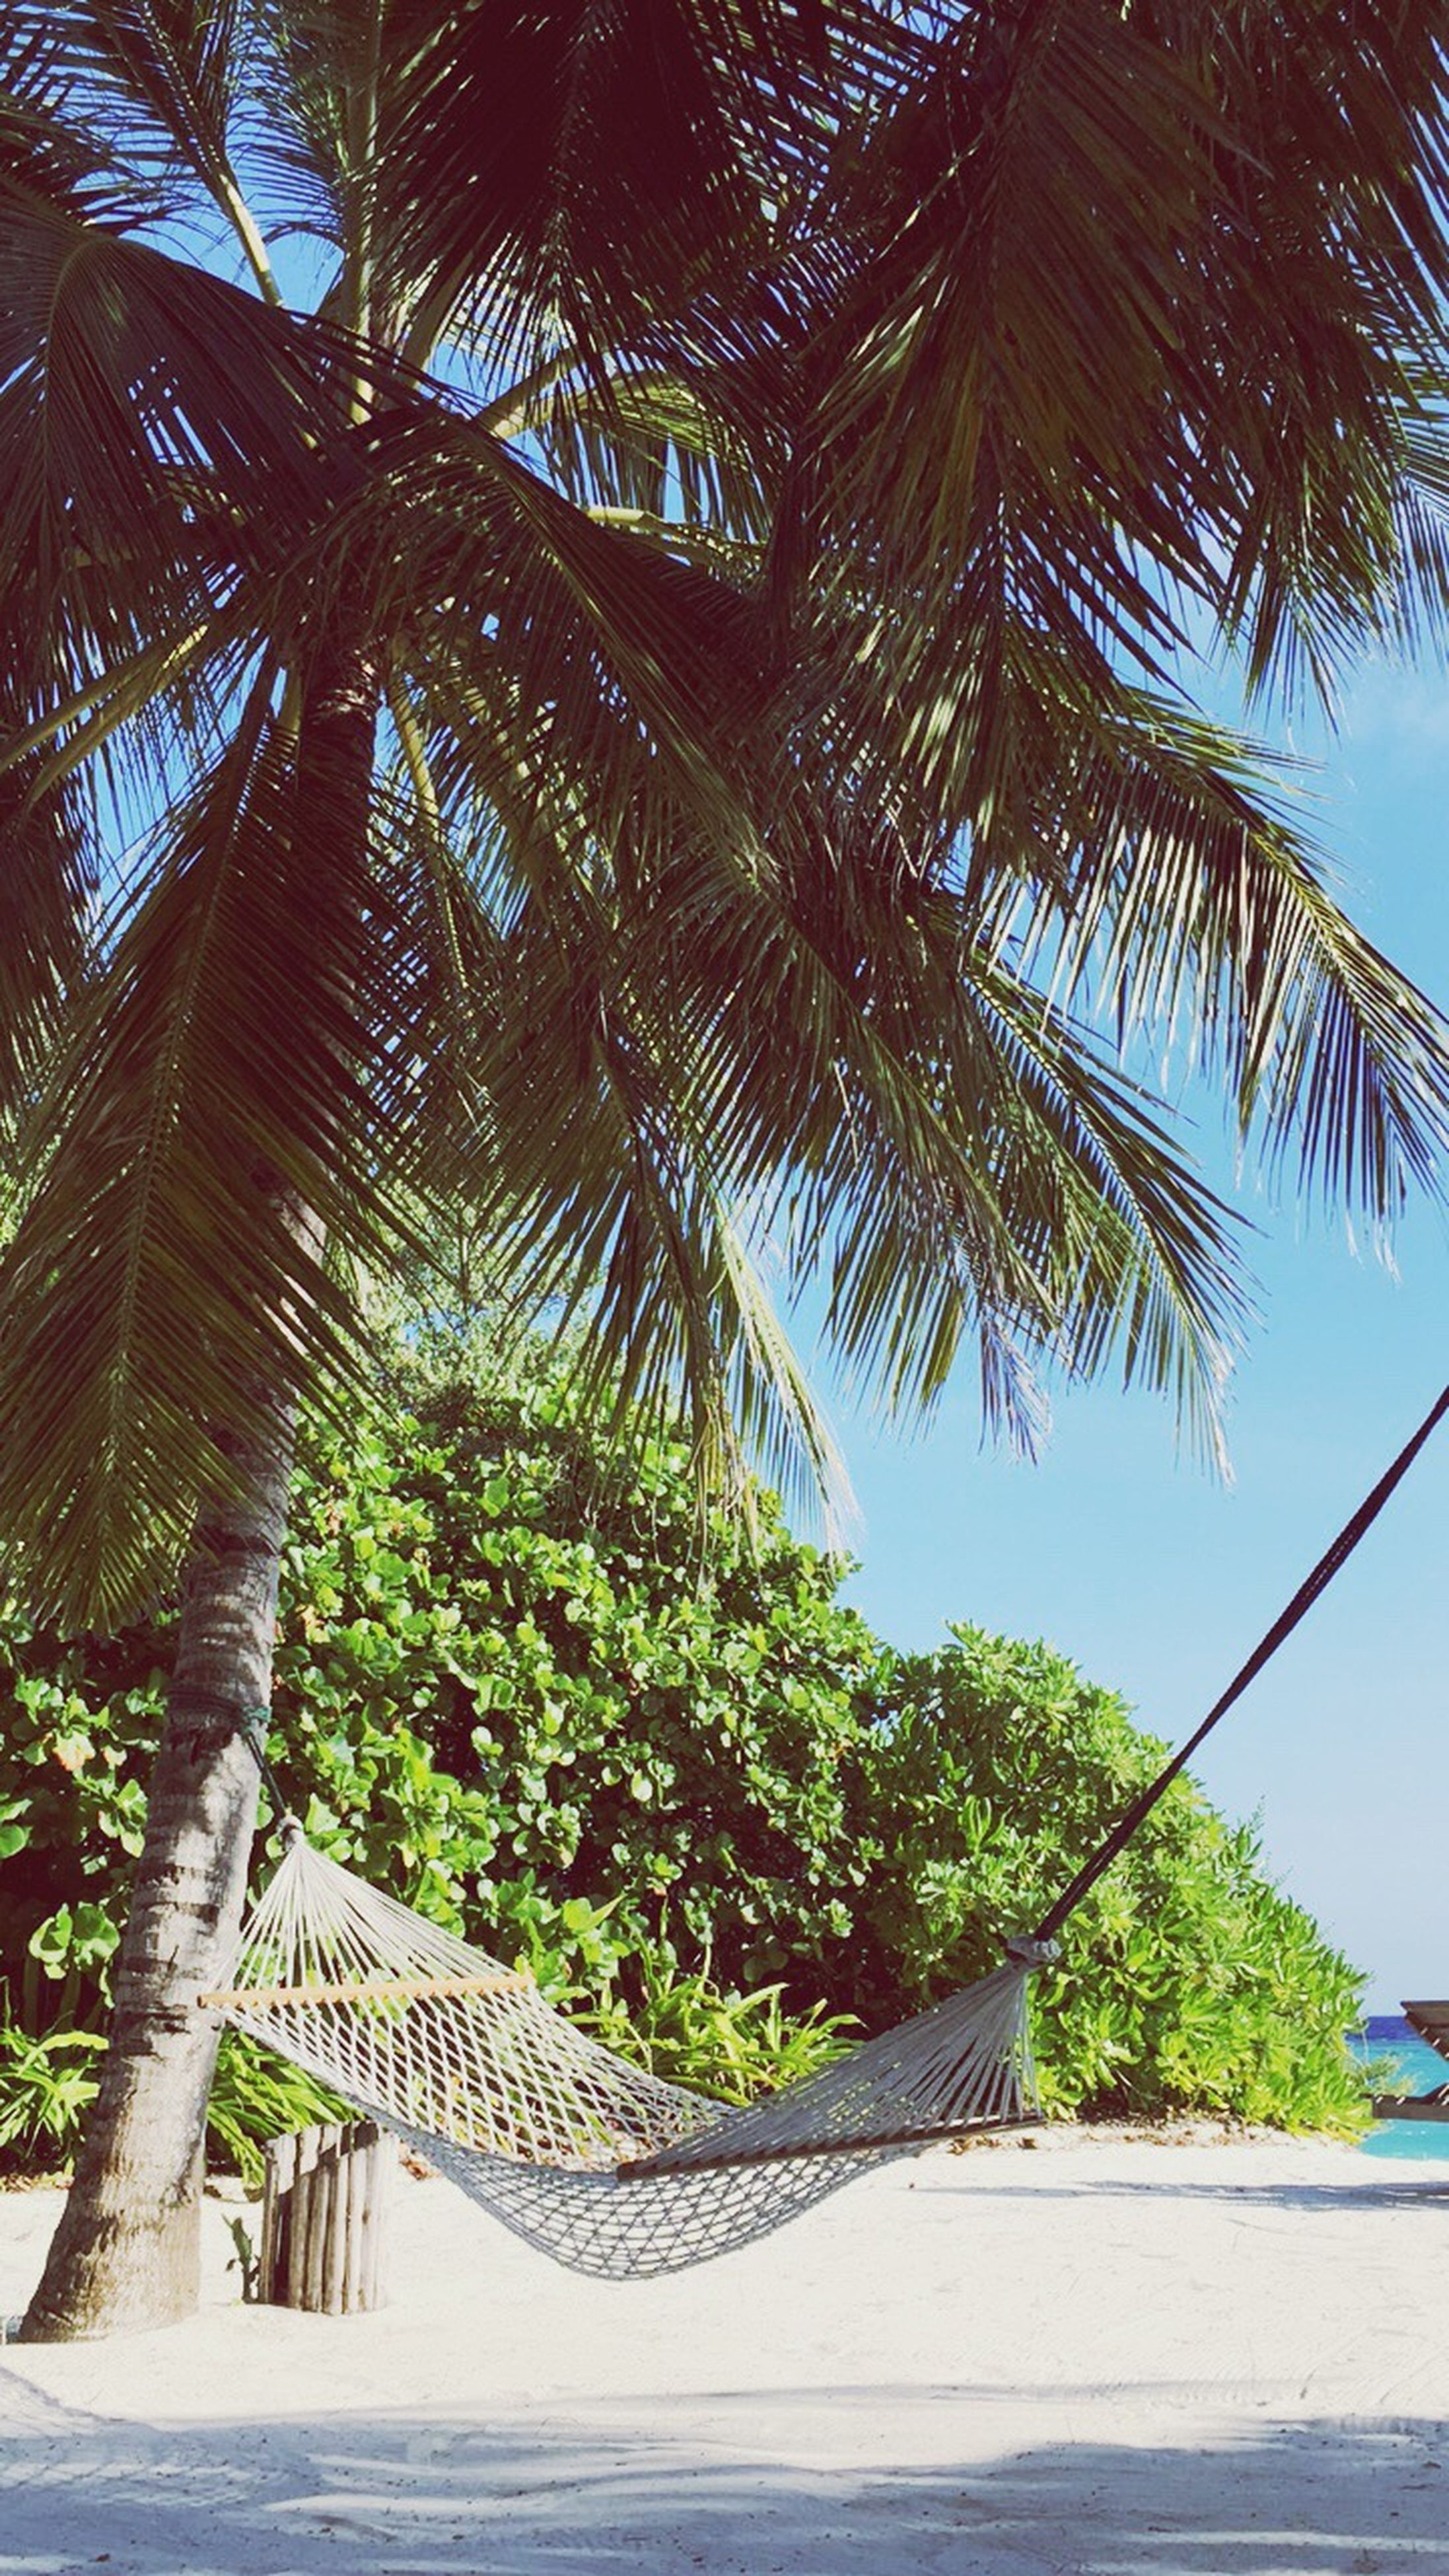 palm tree, tree, growth, low angle view, tree trunk, green color, tranquility, nature, vacations, sky, tranquil scene, outdoors, day, scenics, tropical tree, beauty in nature, palm frond, tourism, railings, green, tourist resort, footpath